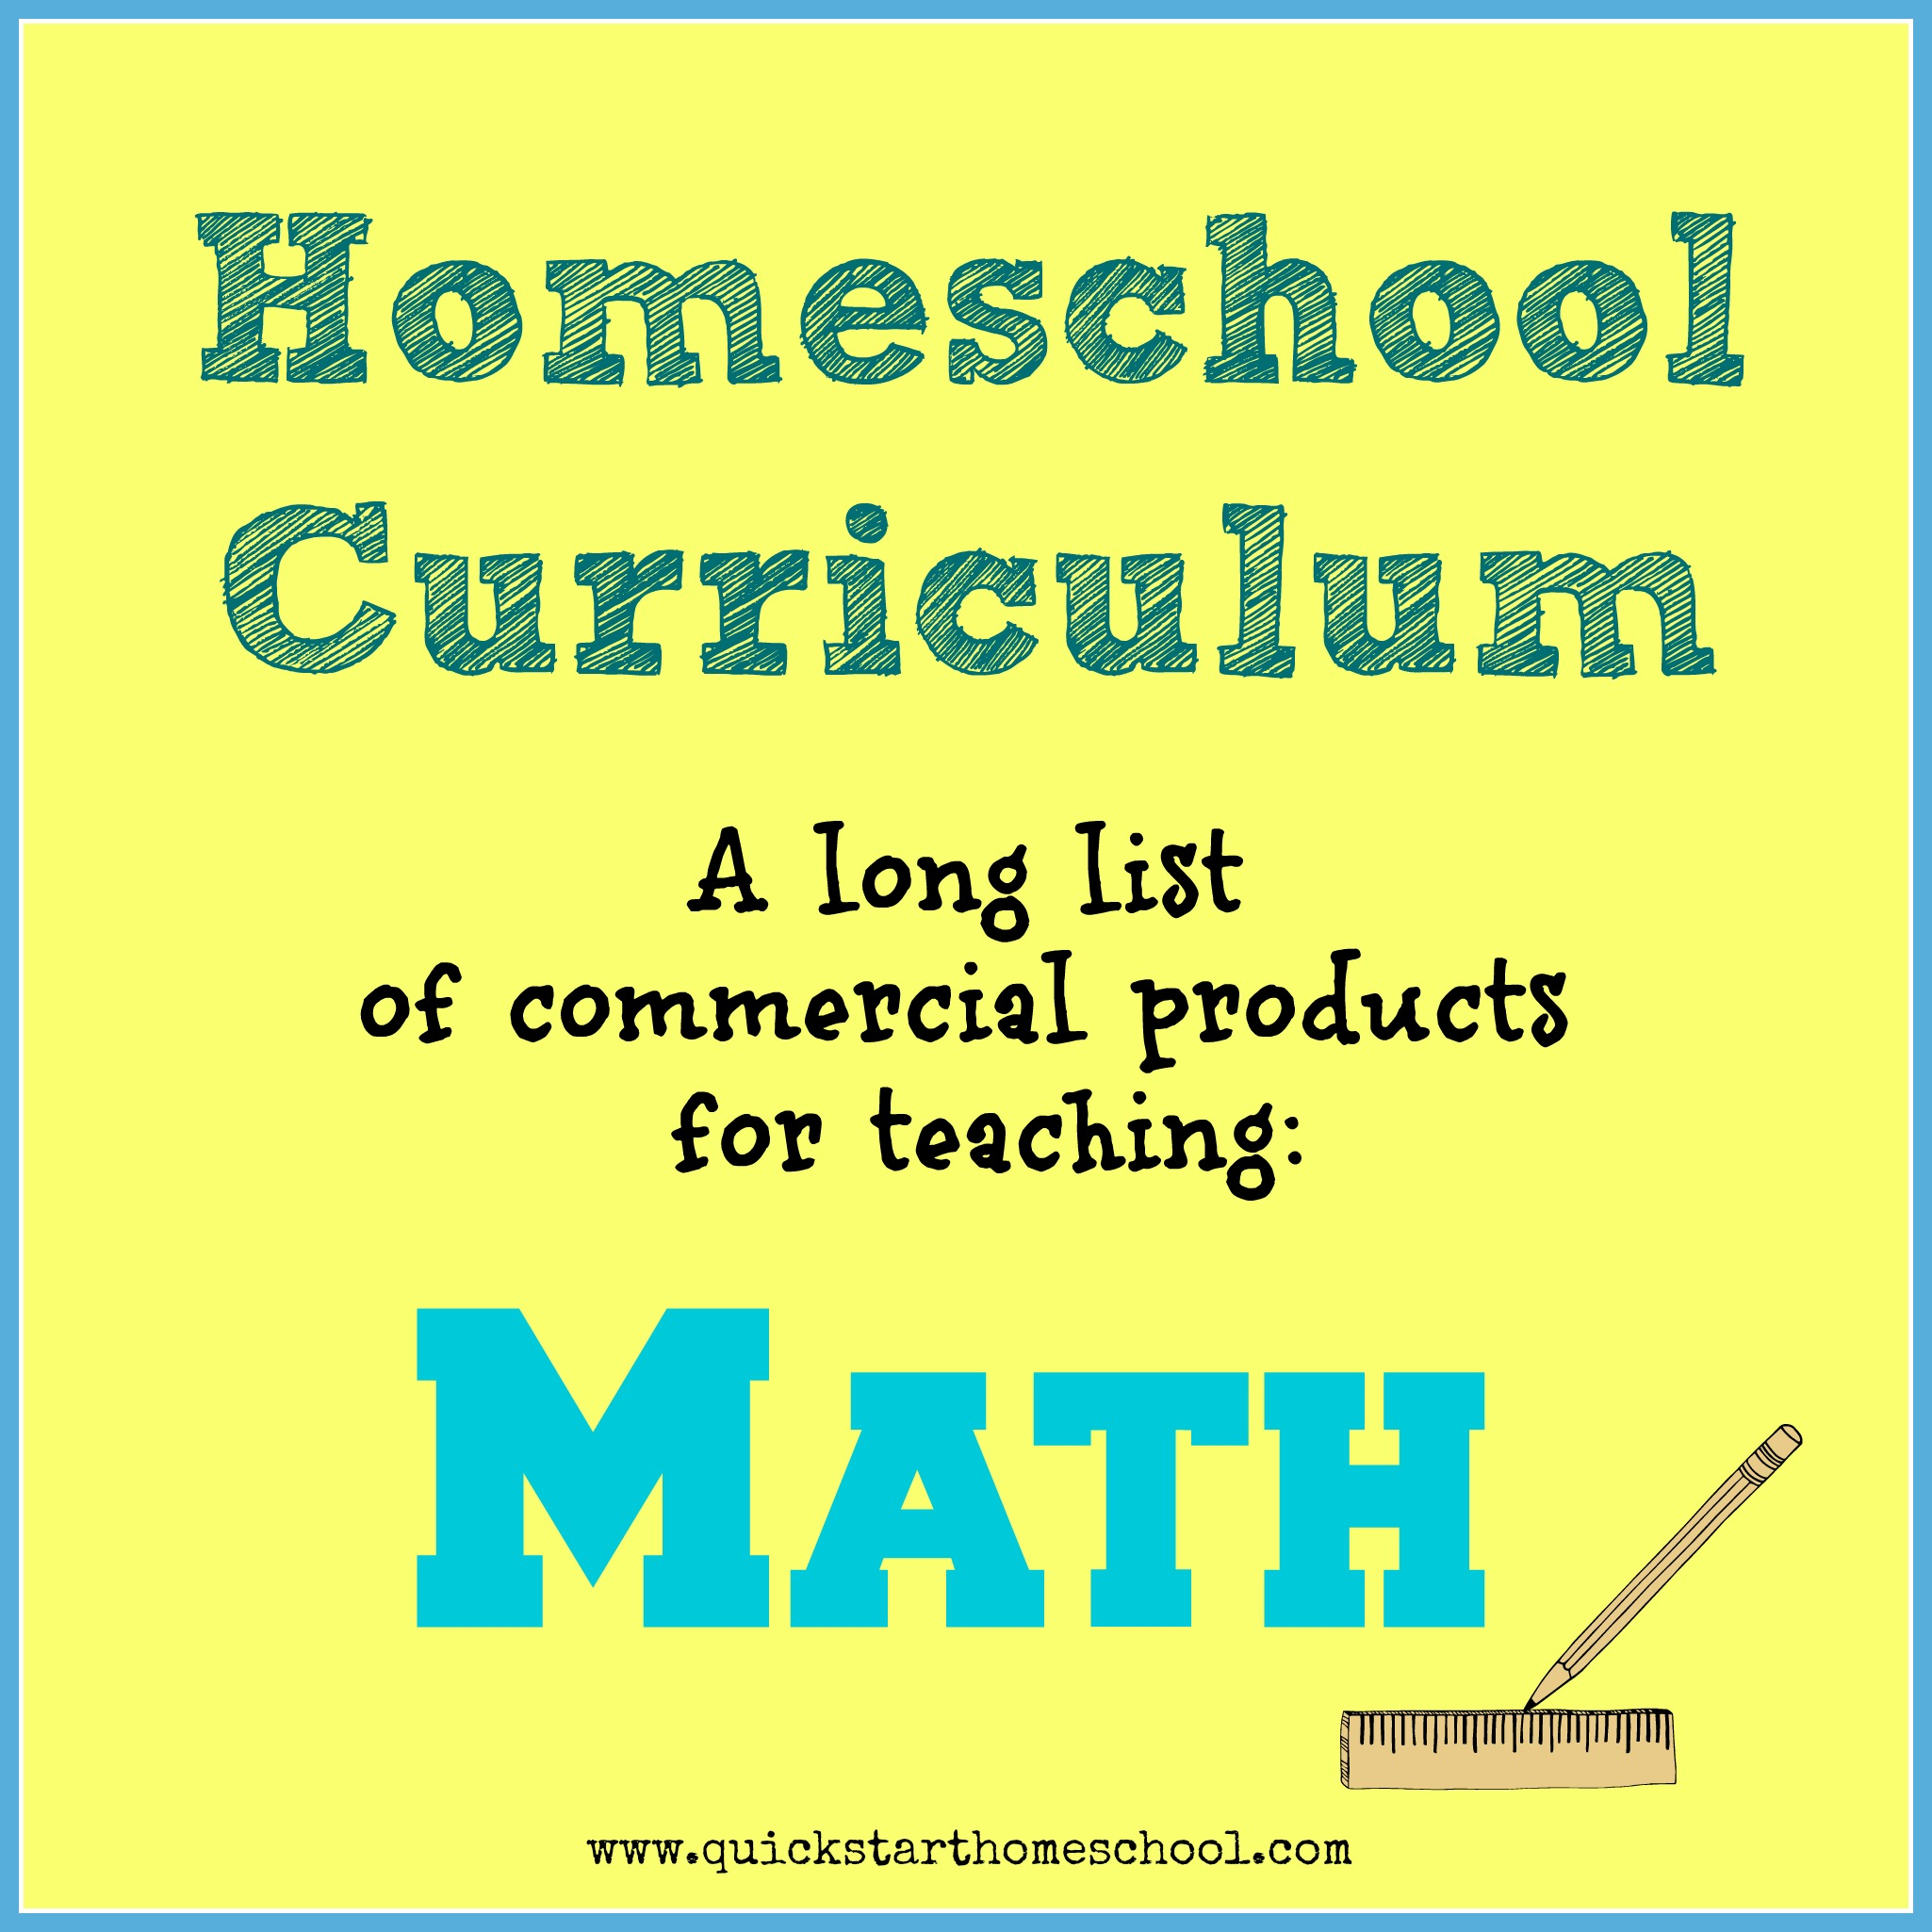 Worksheet Math For Homeschool big list of math curriculum marie claire moreau an alphabetical resources to help teach homeschool mathematics